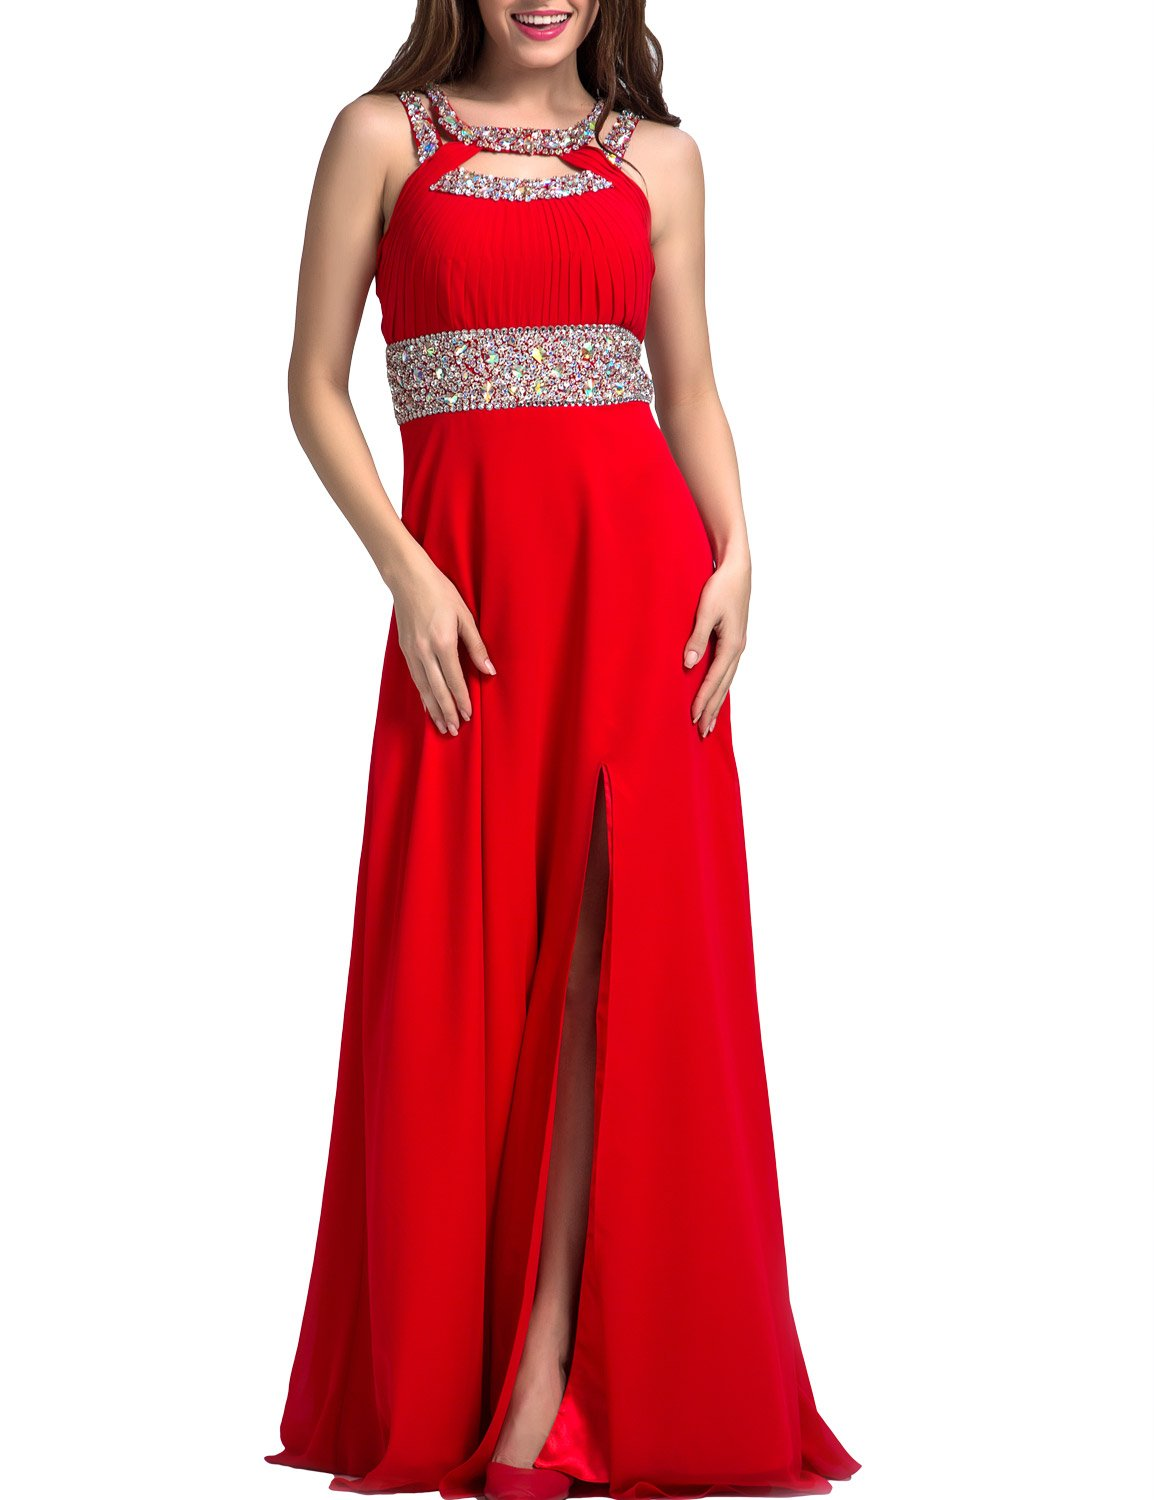 SeasonMall Womens Prom Dress A Line Scoop Chiffon Long Slit Evening Dress